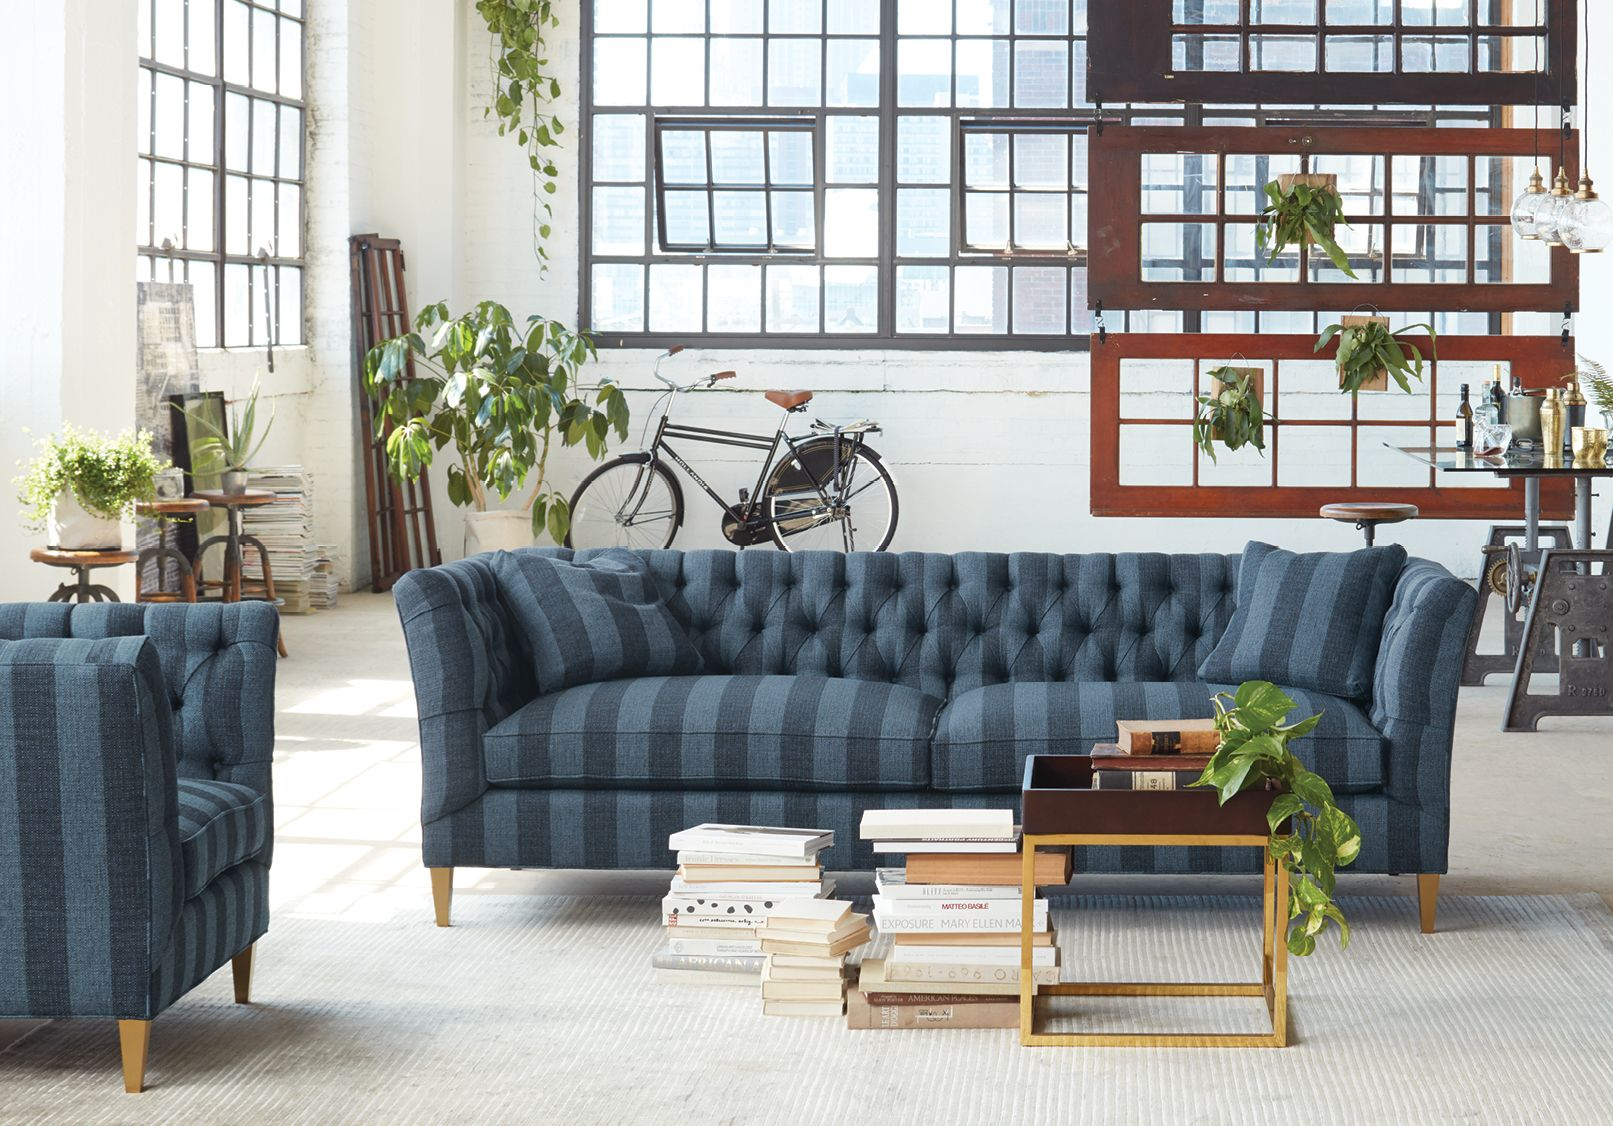 A coveted classic completely benchmade and handcrafted in the foothills of north carolina the chapman sofa receives a defining update with brass accents